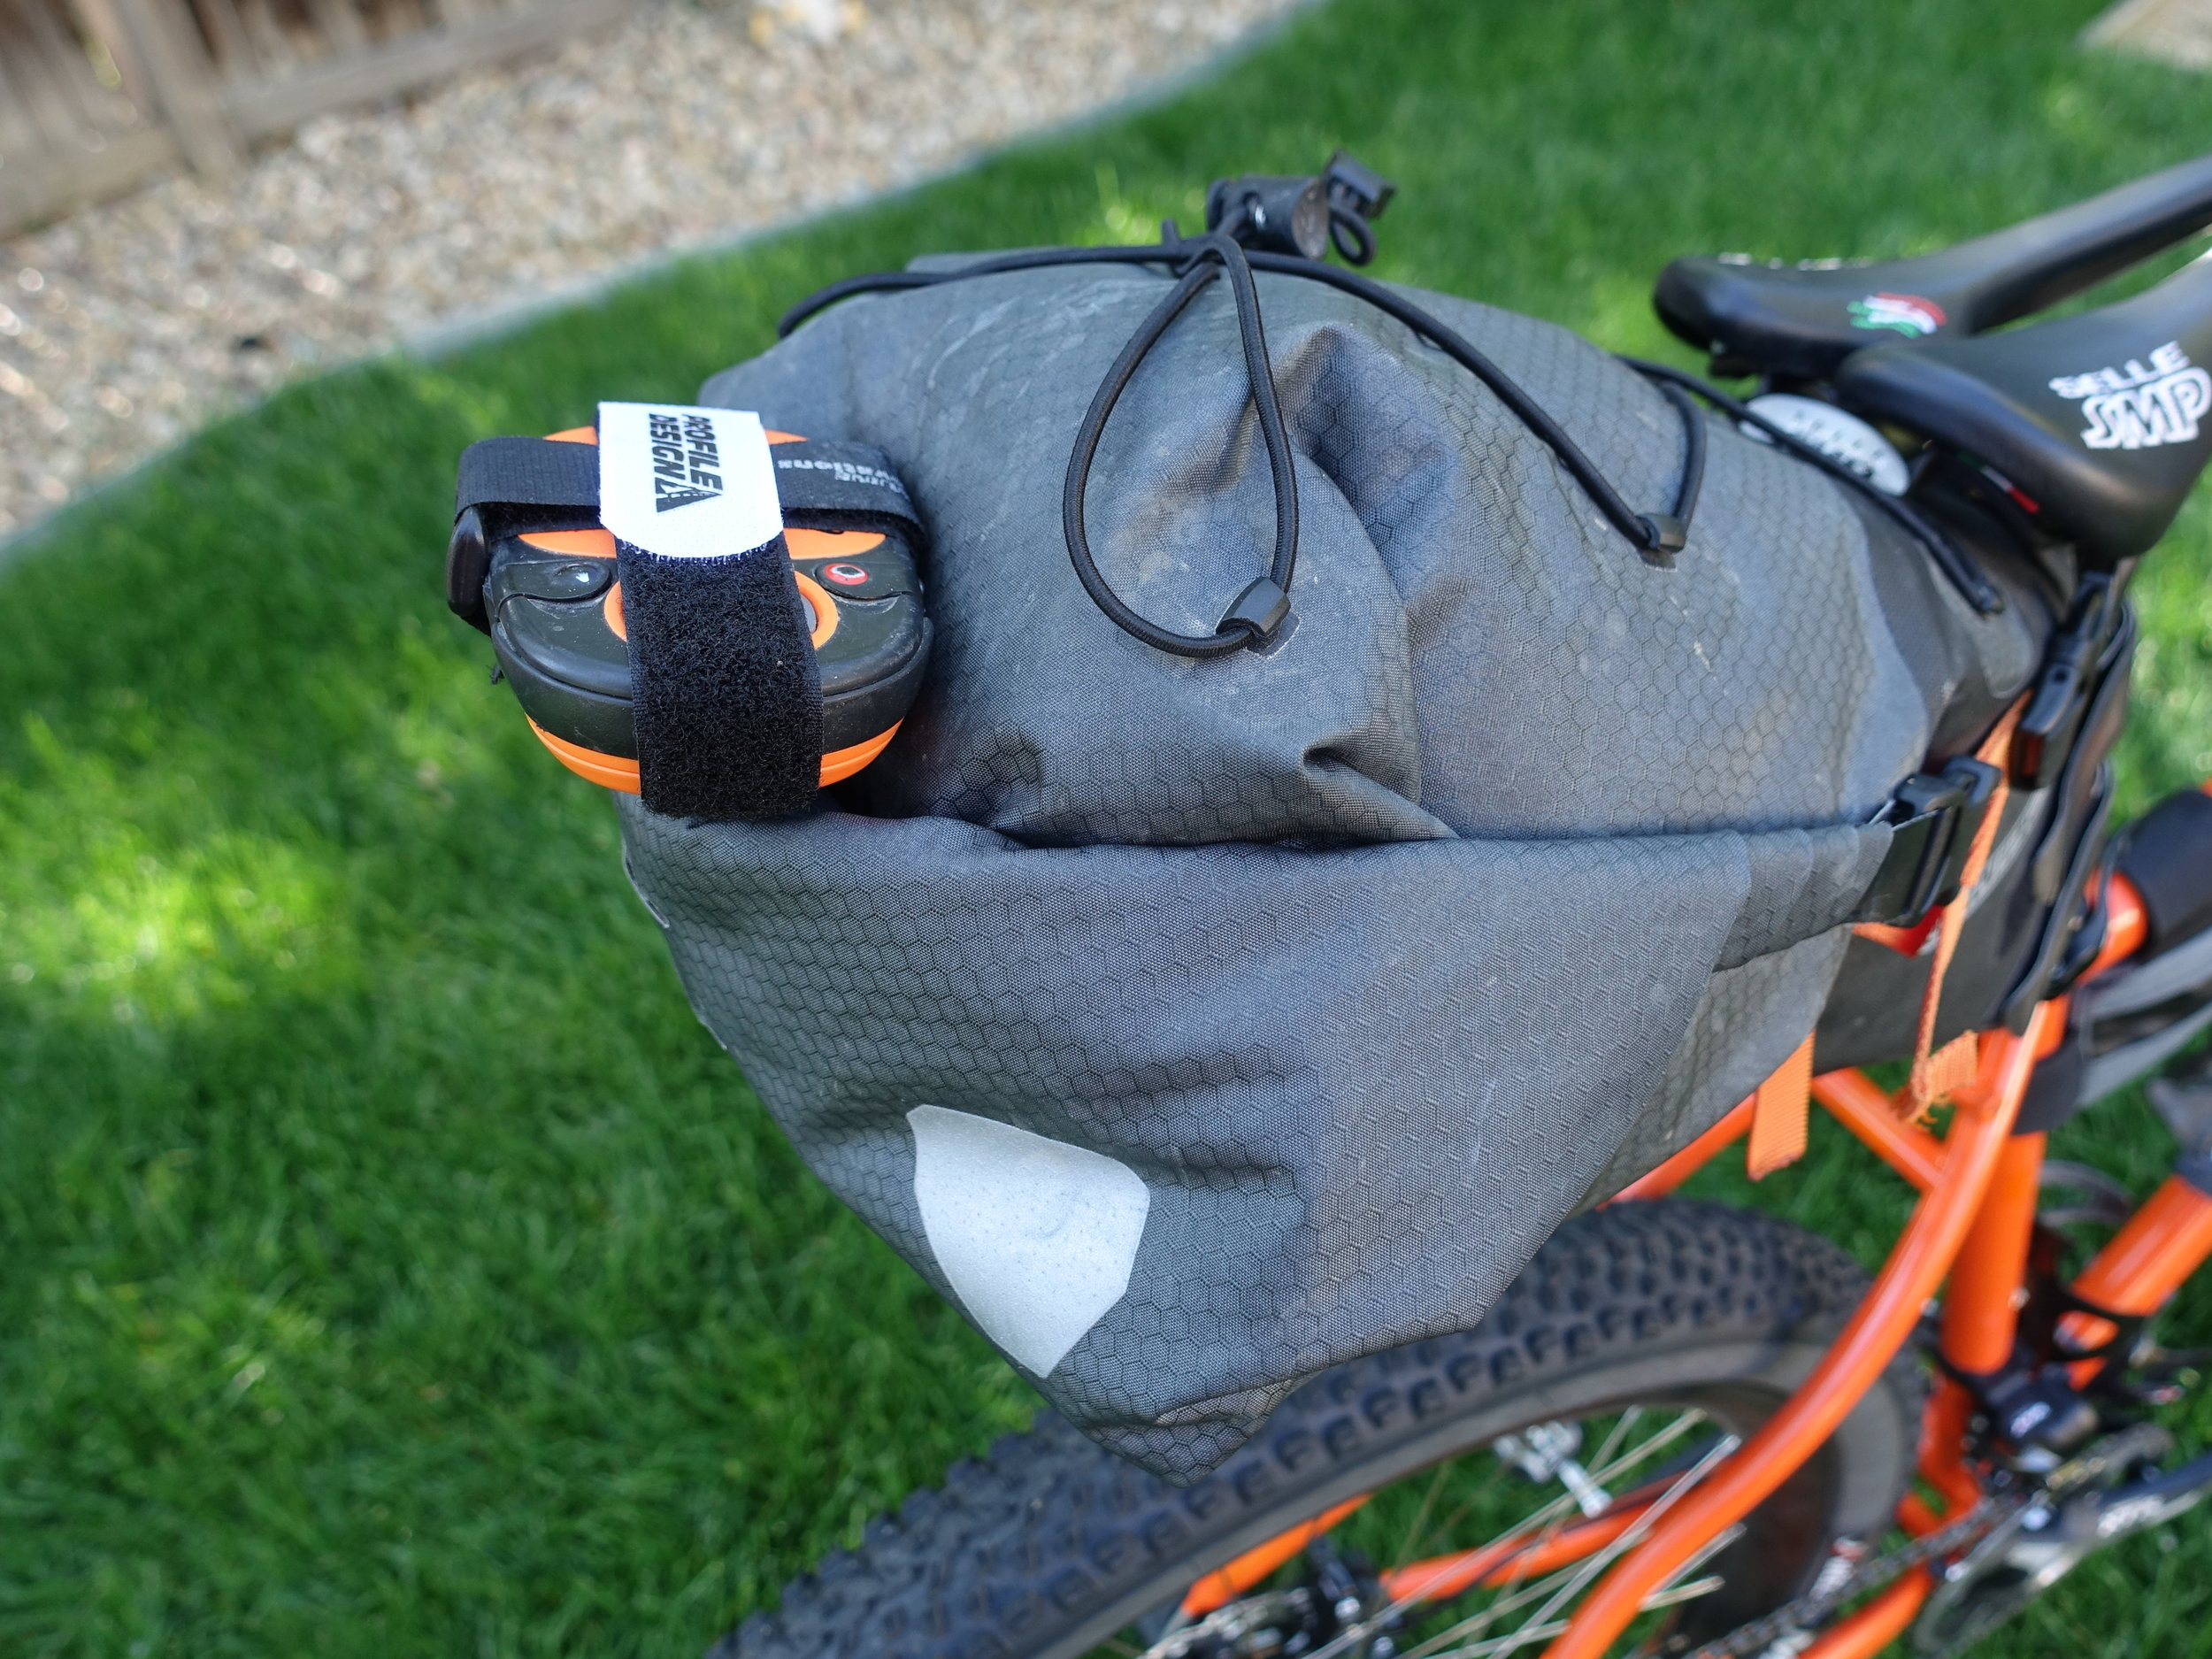 Using the light mounting points on the Ortlieb Seat Pack to mount my Spot Tracker. With an old Genuine Innovations Big Air mounting block and a couple Velcro straps I have a nice, secure way to carry it and with a good line of sight to the sky.